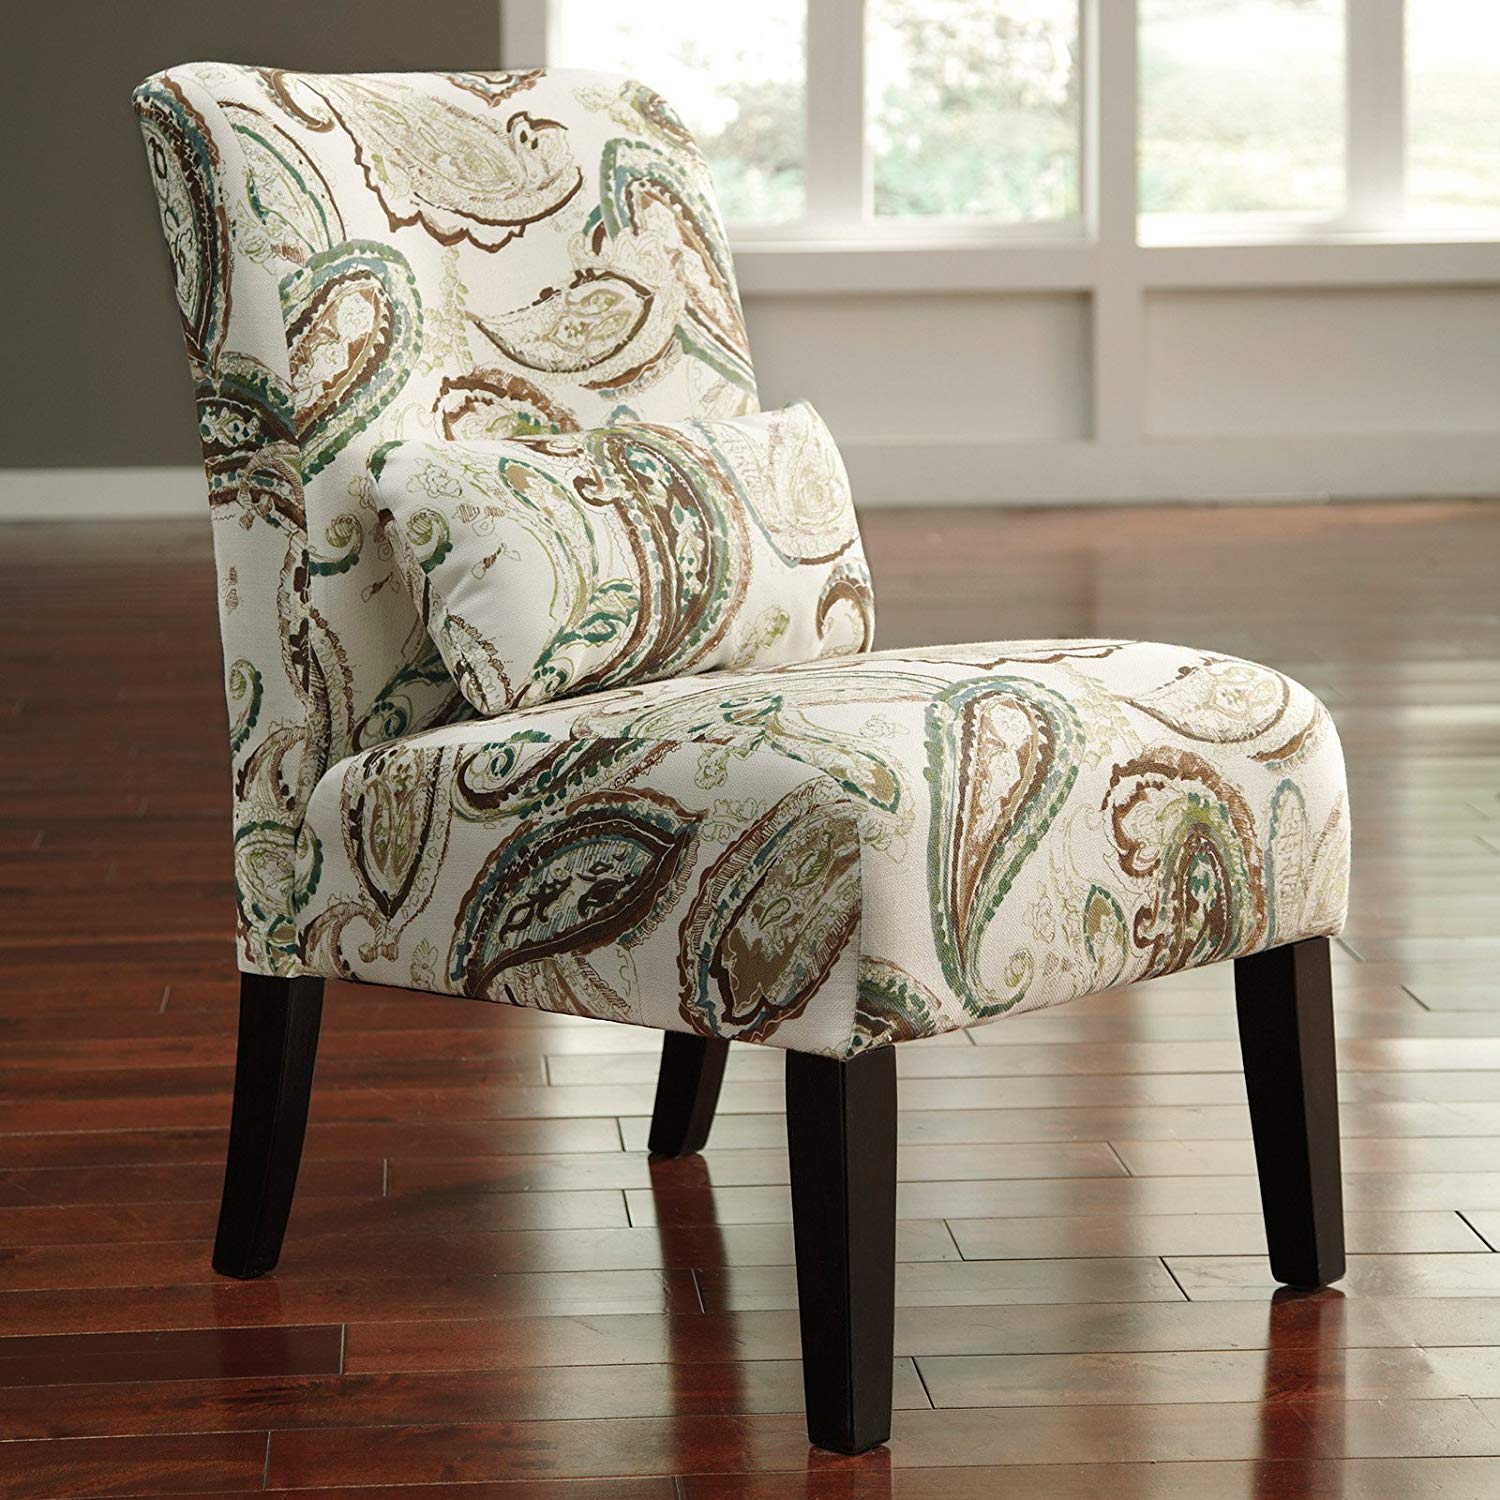 Upholstered Armless Accent Chair With Kidney Lumbar Pillow, Plush Cushion Foam Padded Seat, Contemporary Style, Durable Construction, Ideal For Living Room, Bedroom, Pattern Fabric + Expert Guide